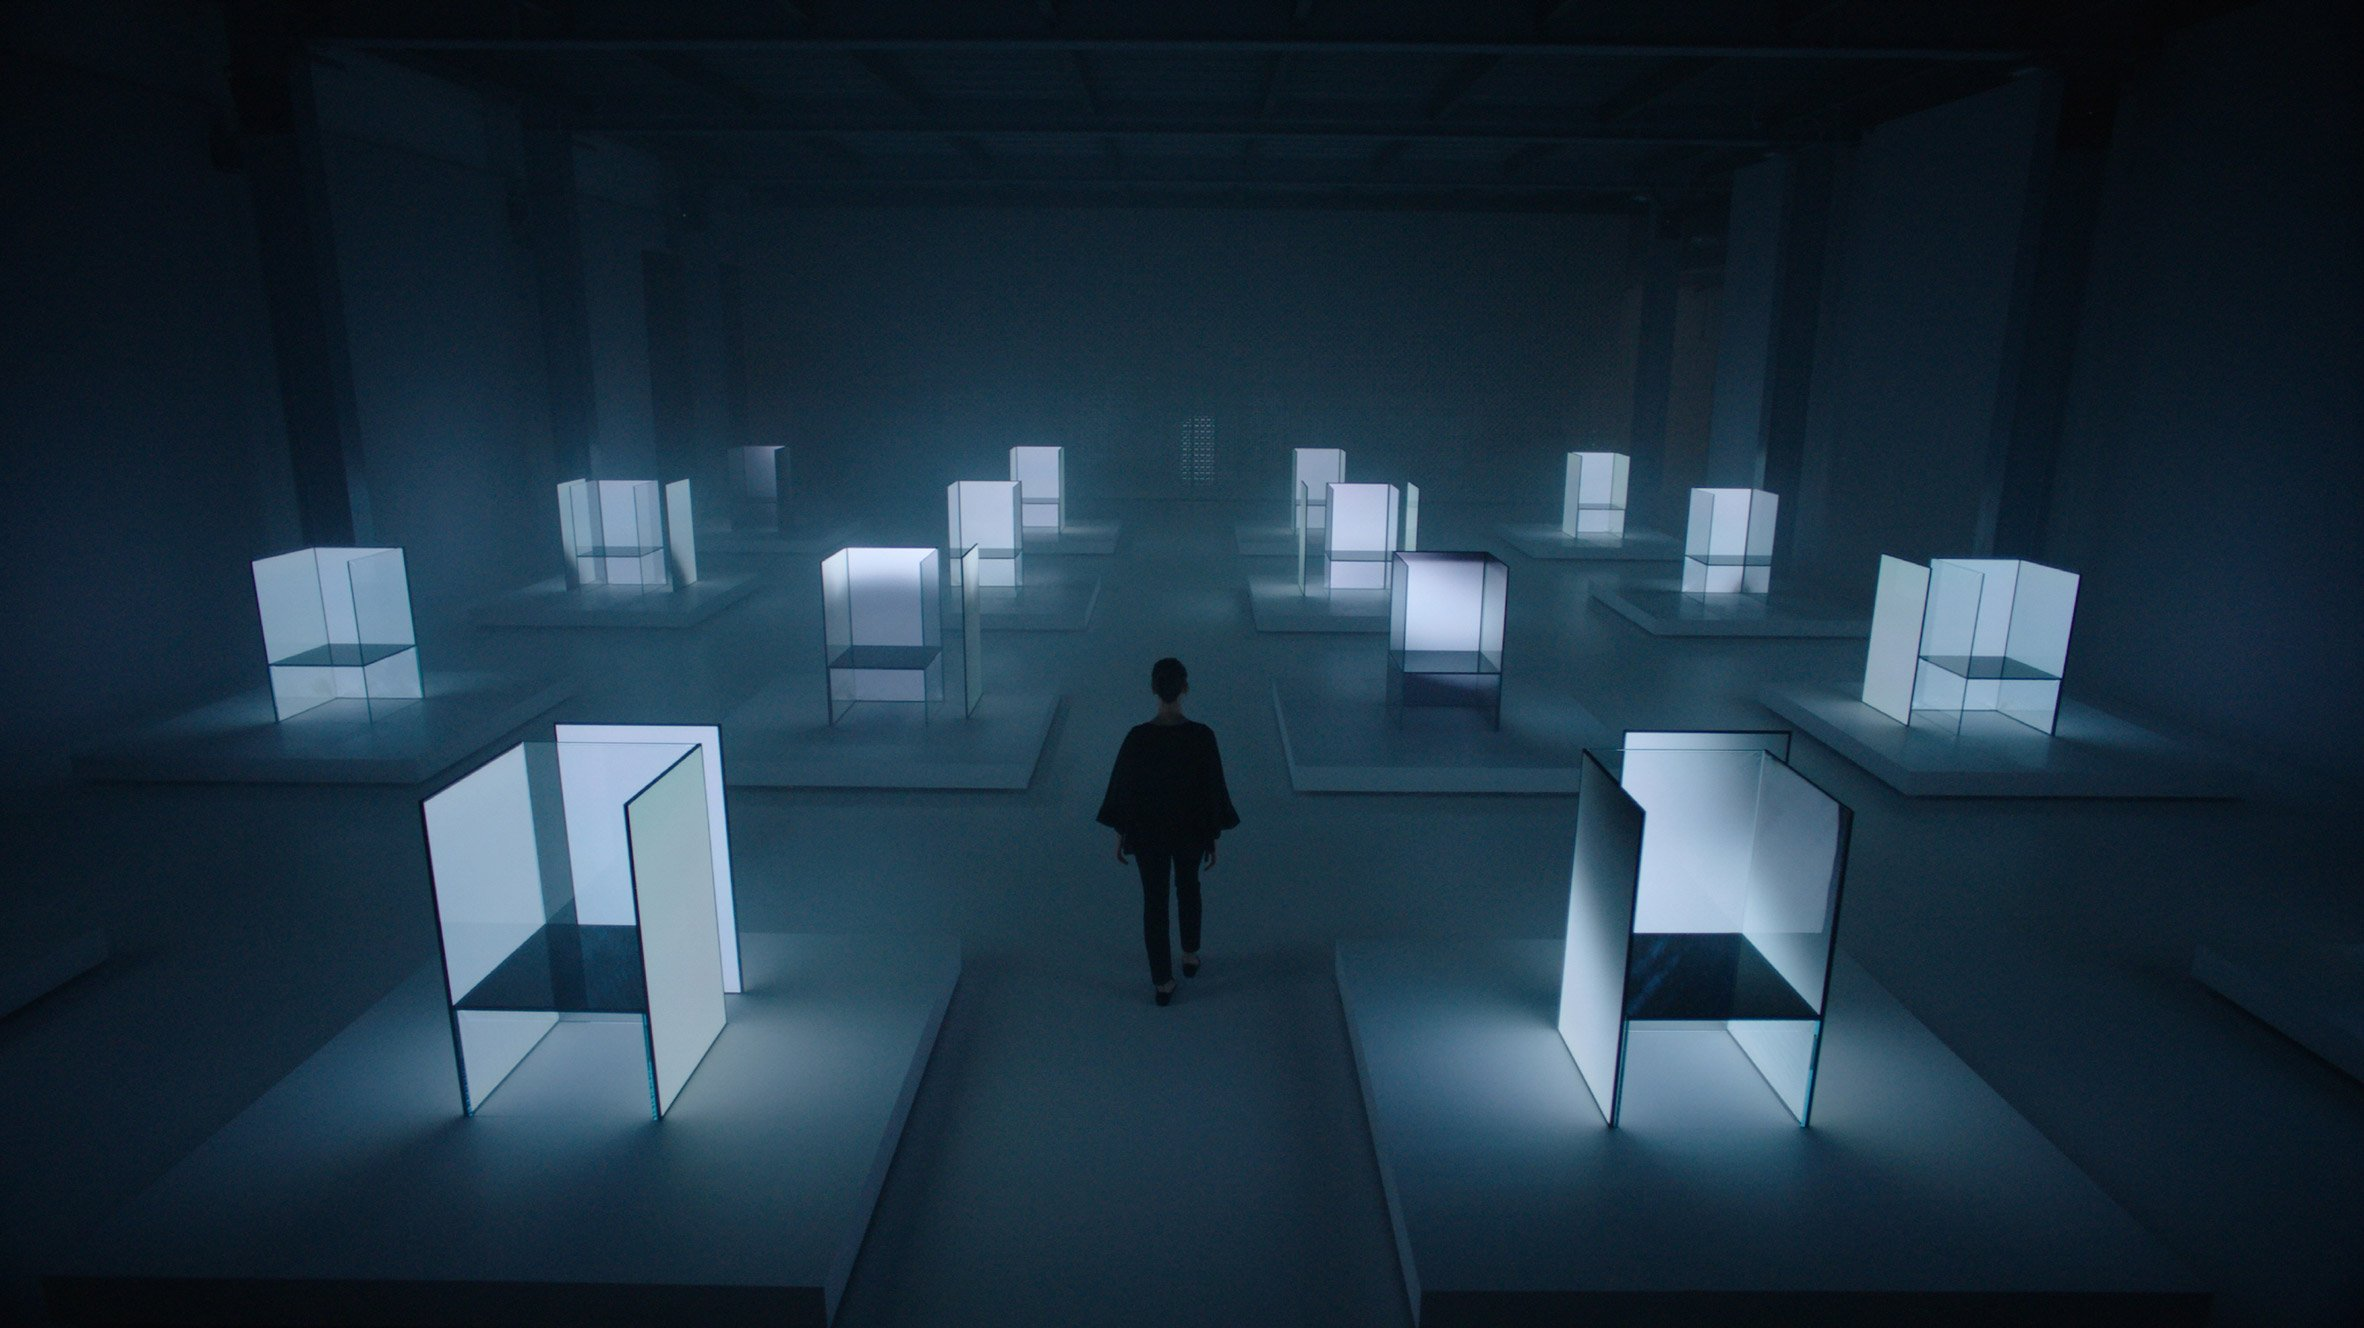 Tokujin Yoshioka and LG reveal science fiction-inspired light installation in Milan